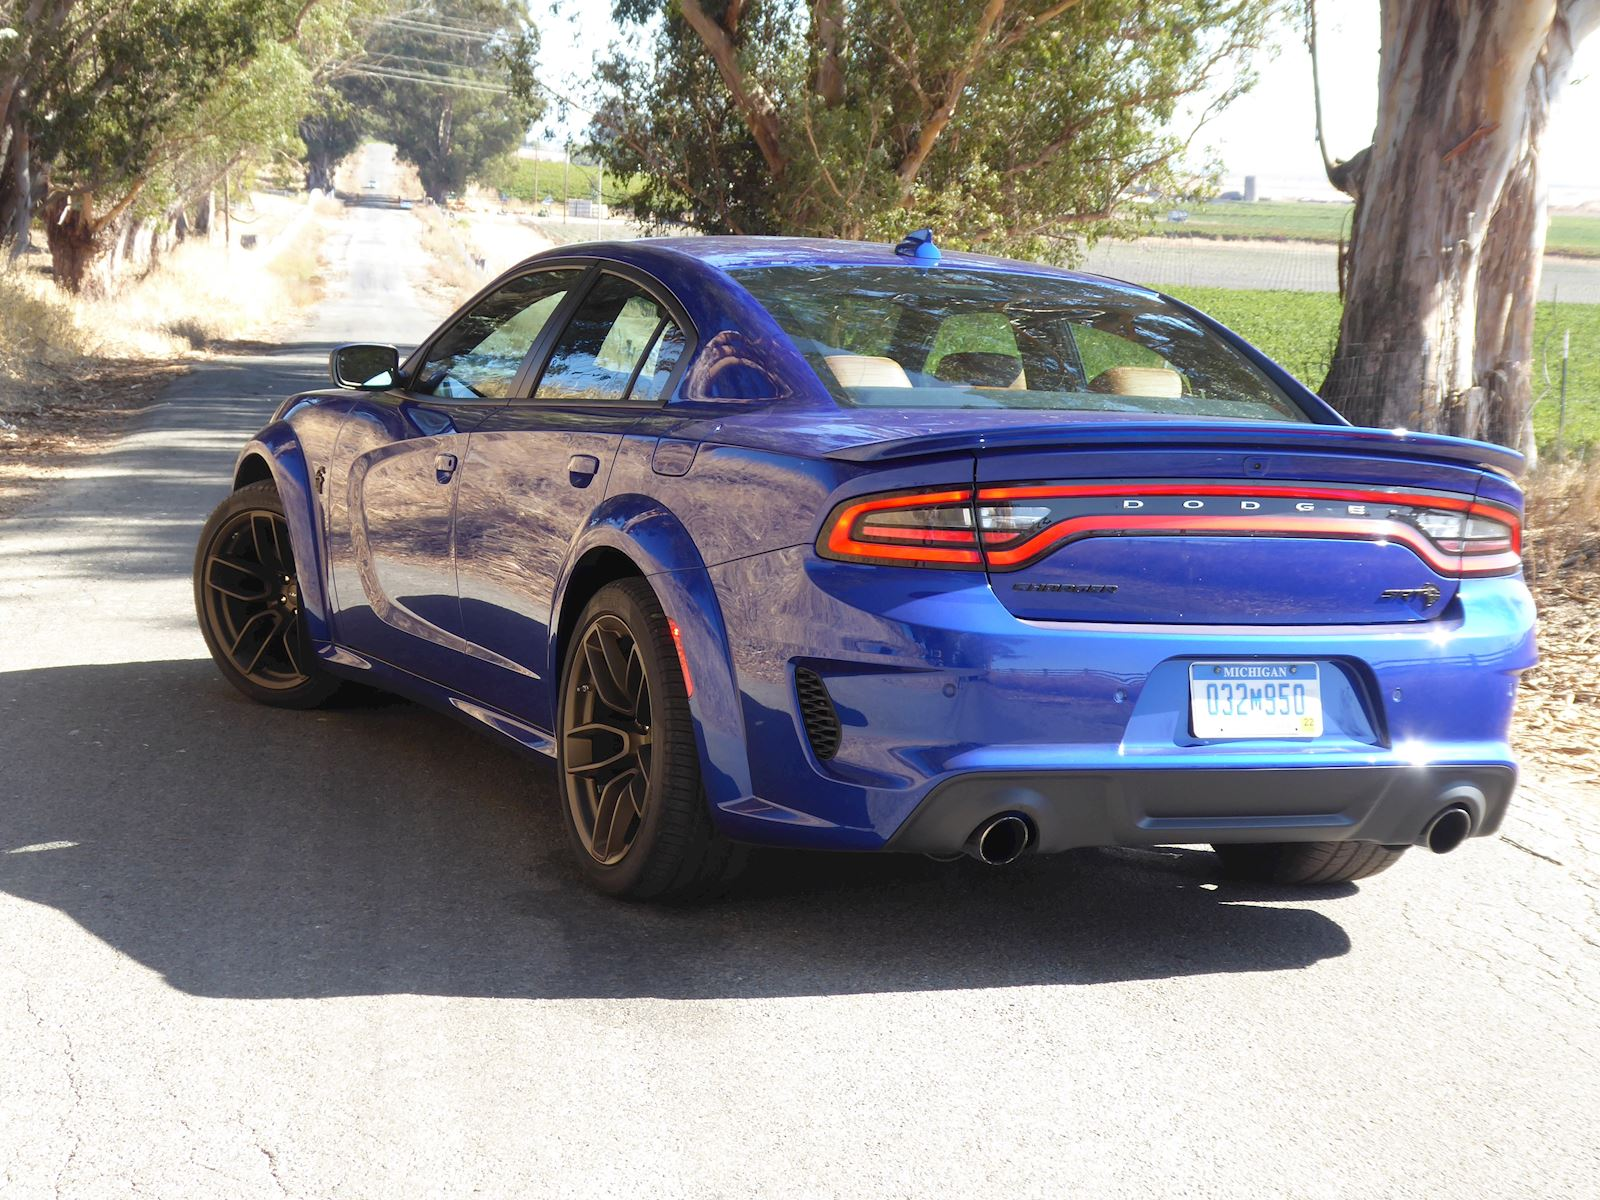 2020 Dodge Charger SRT Hellcat Widebody rear view